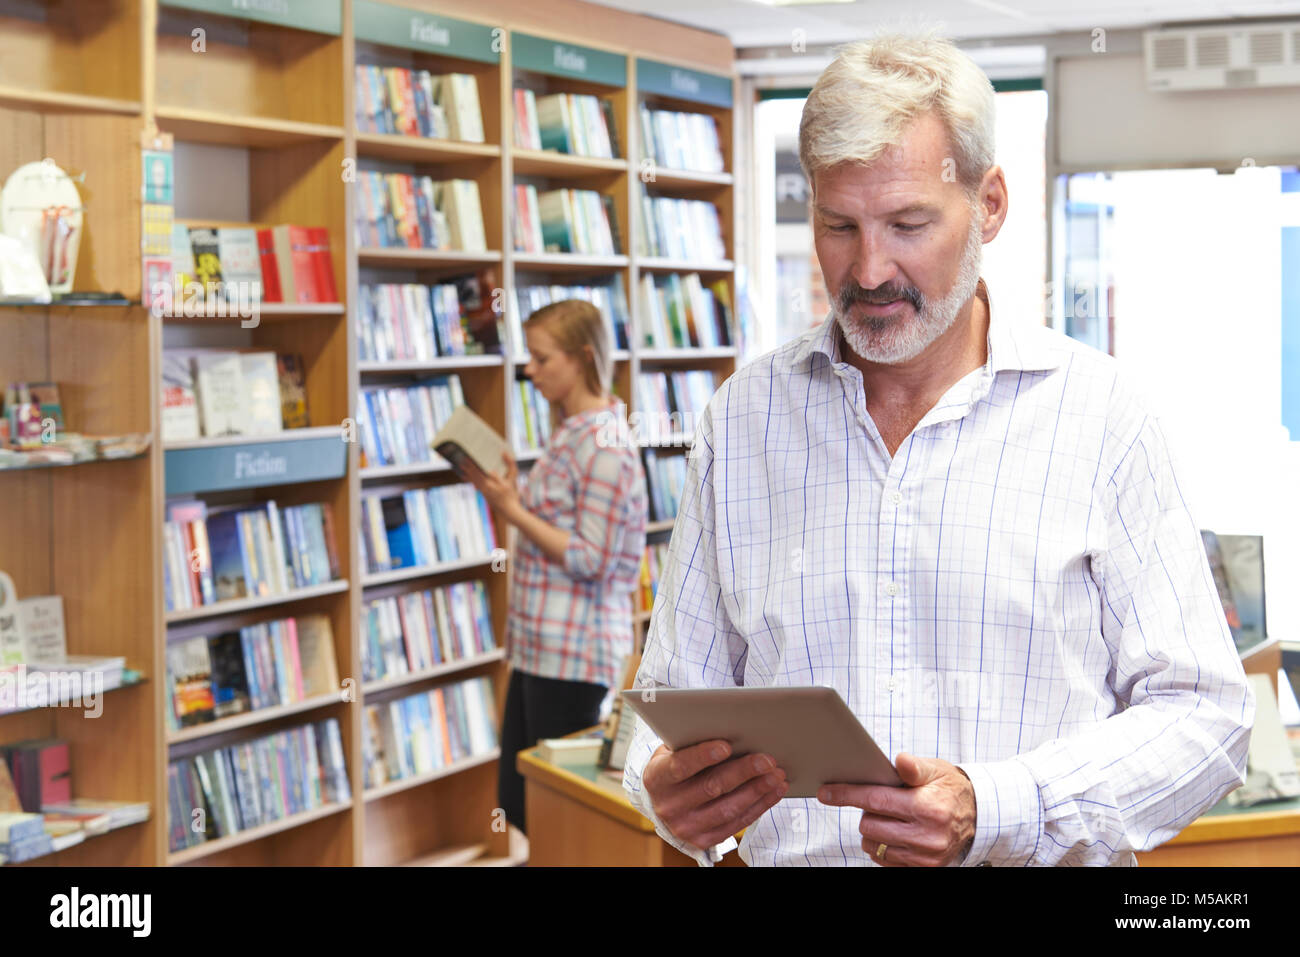 Male Bookstore Owner Using Digital Tablet With Customer In Background - Stock Image